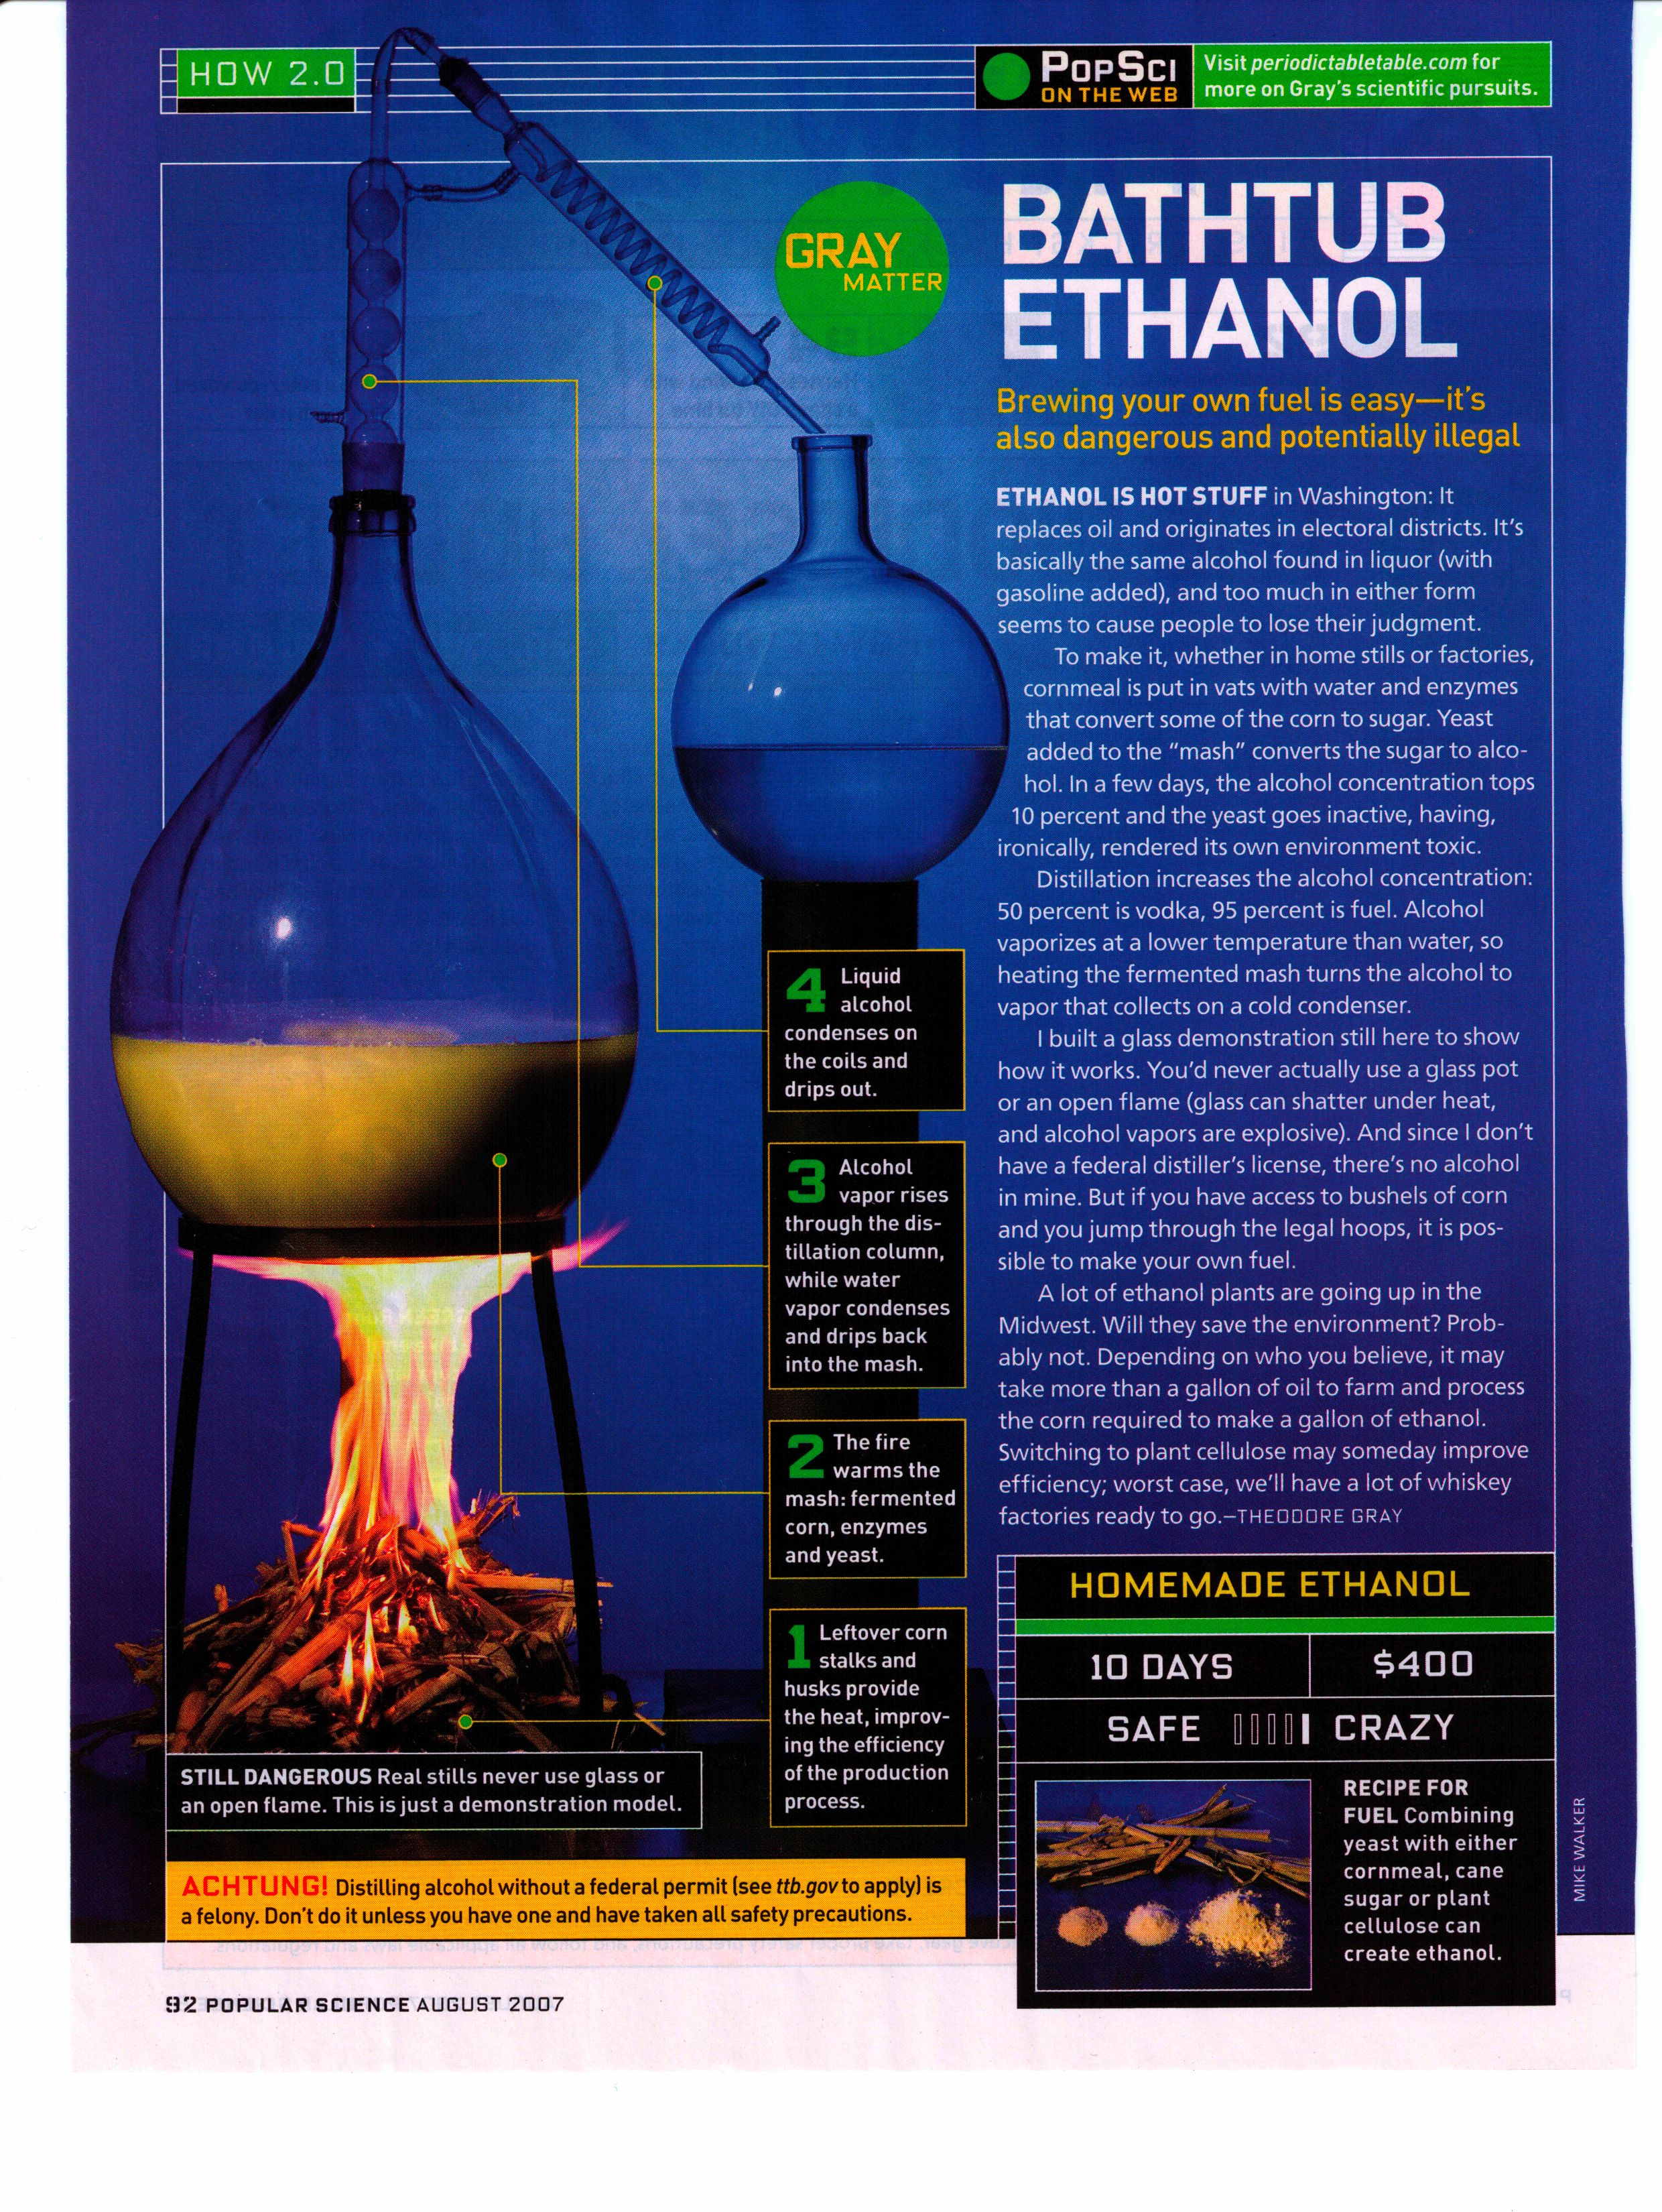 make your own ethanol popular science column by theodore gray